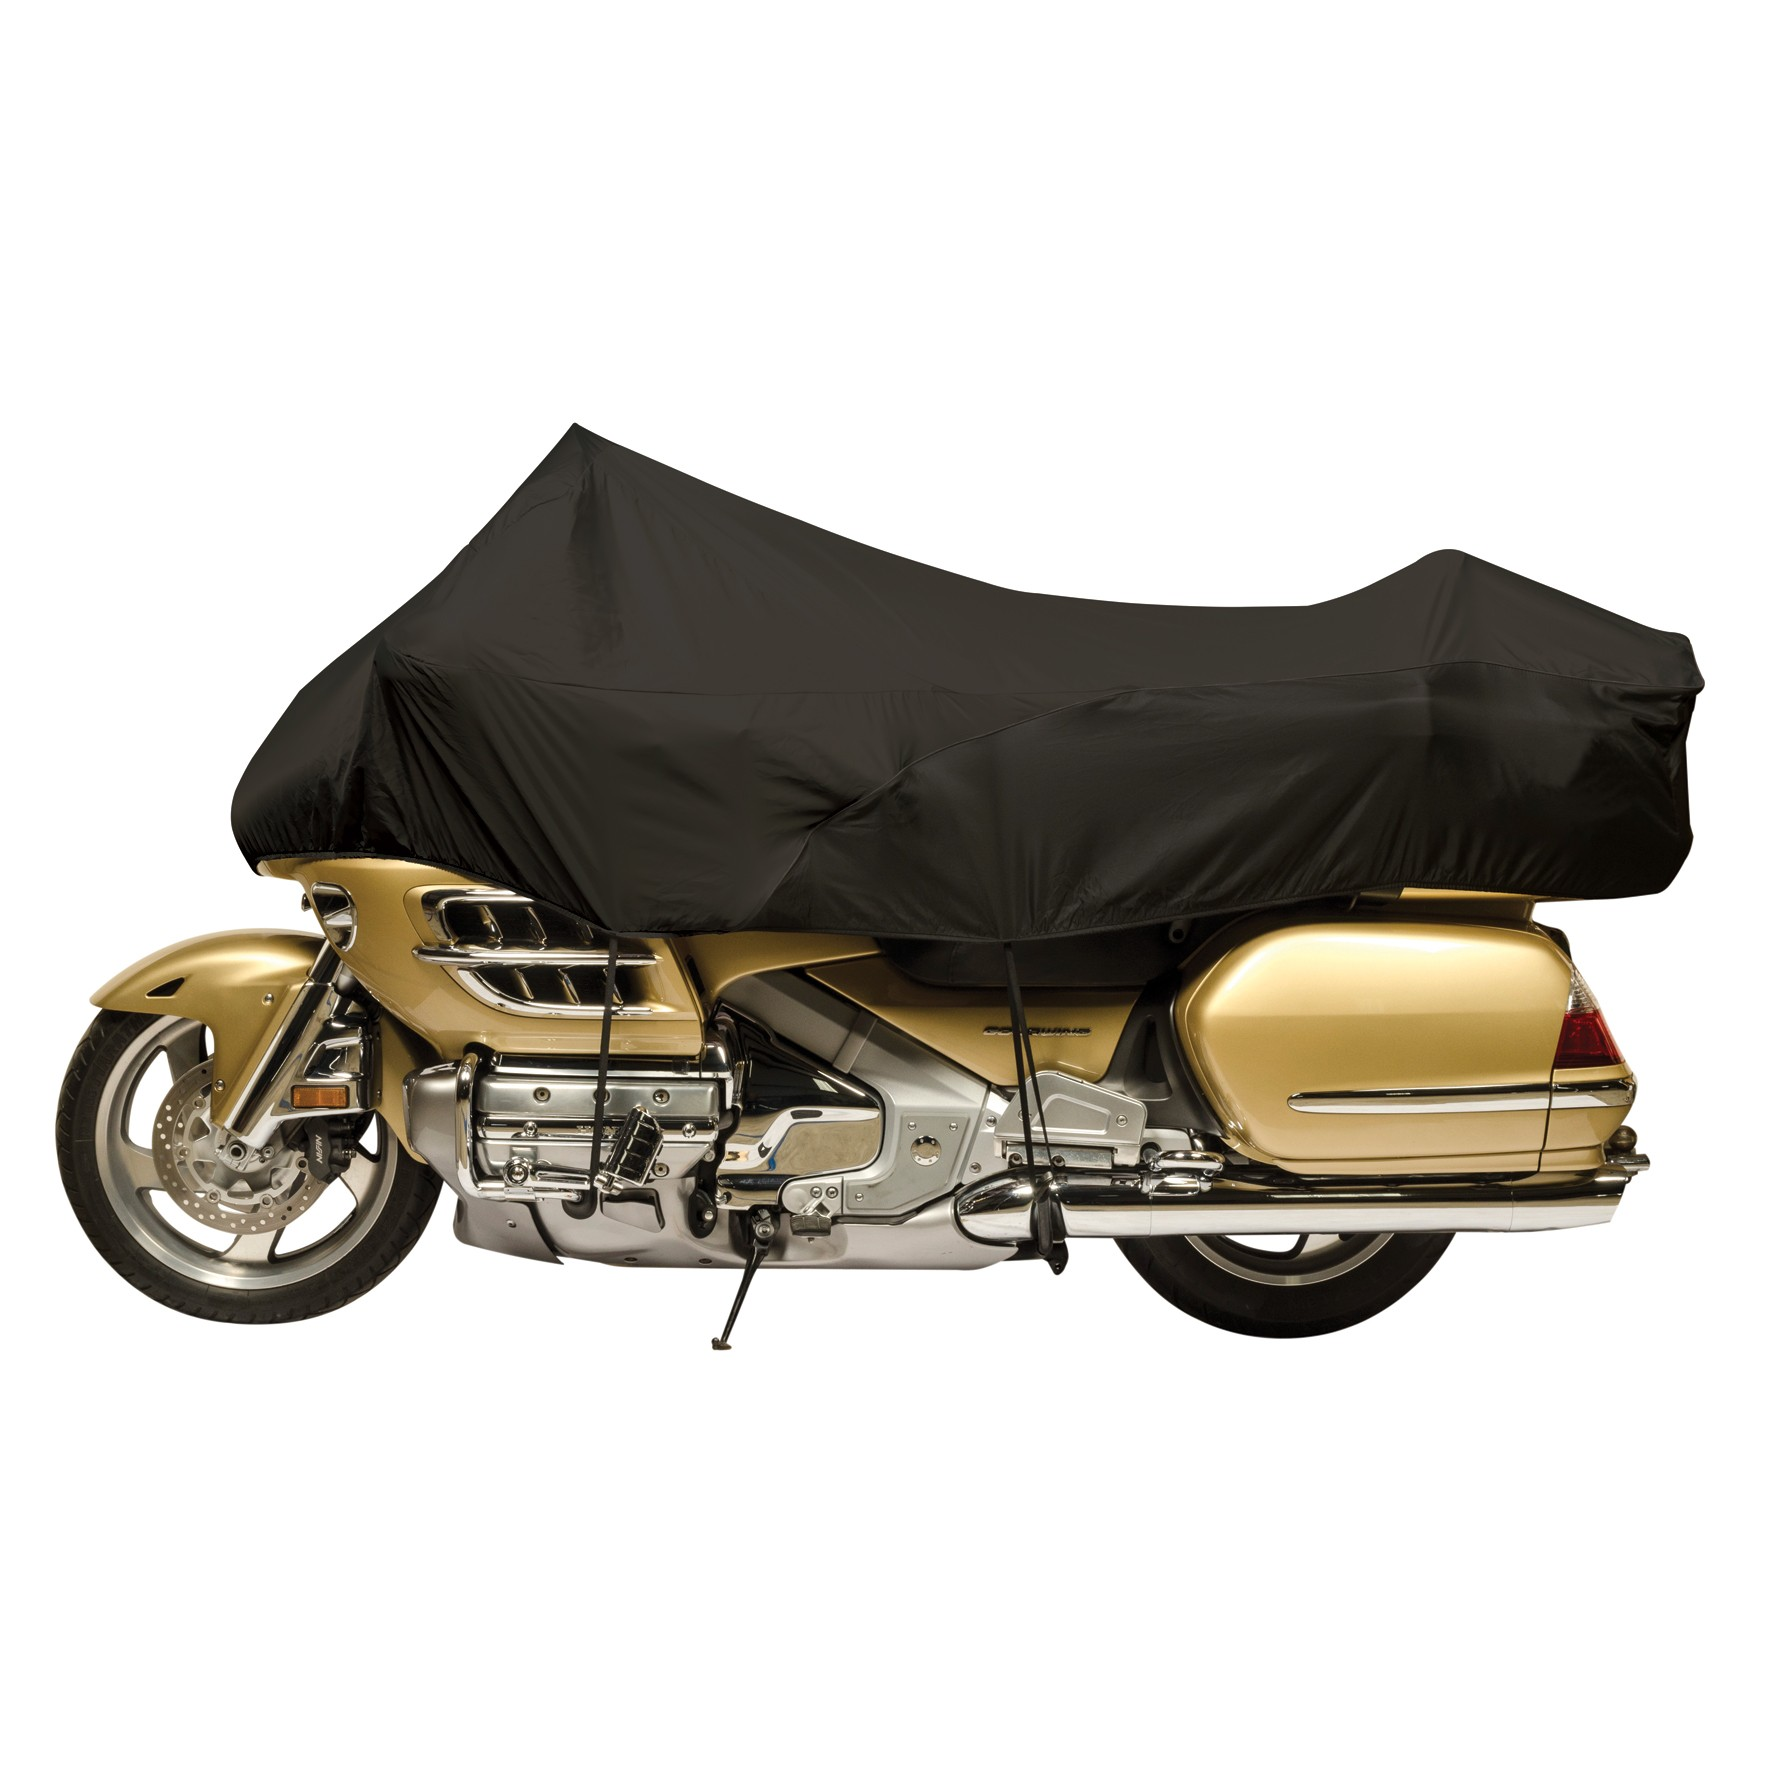 Dowco Guardian Premium Half Cover on a Honda Gold Wing